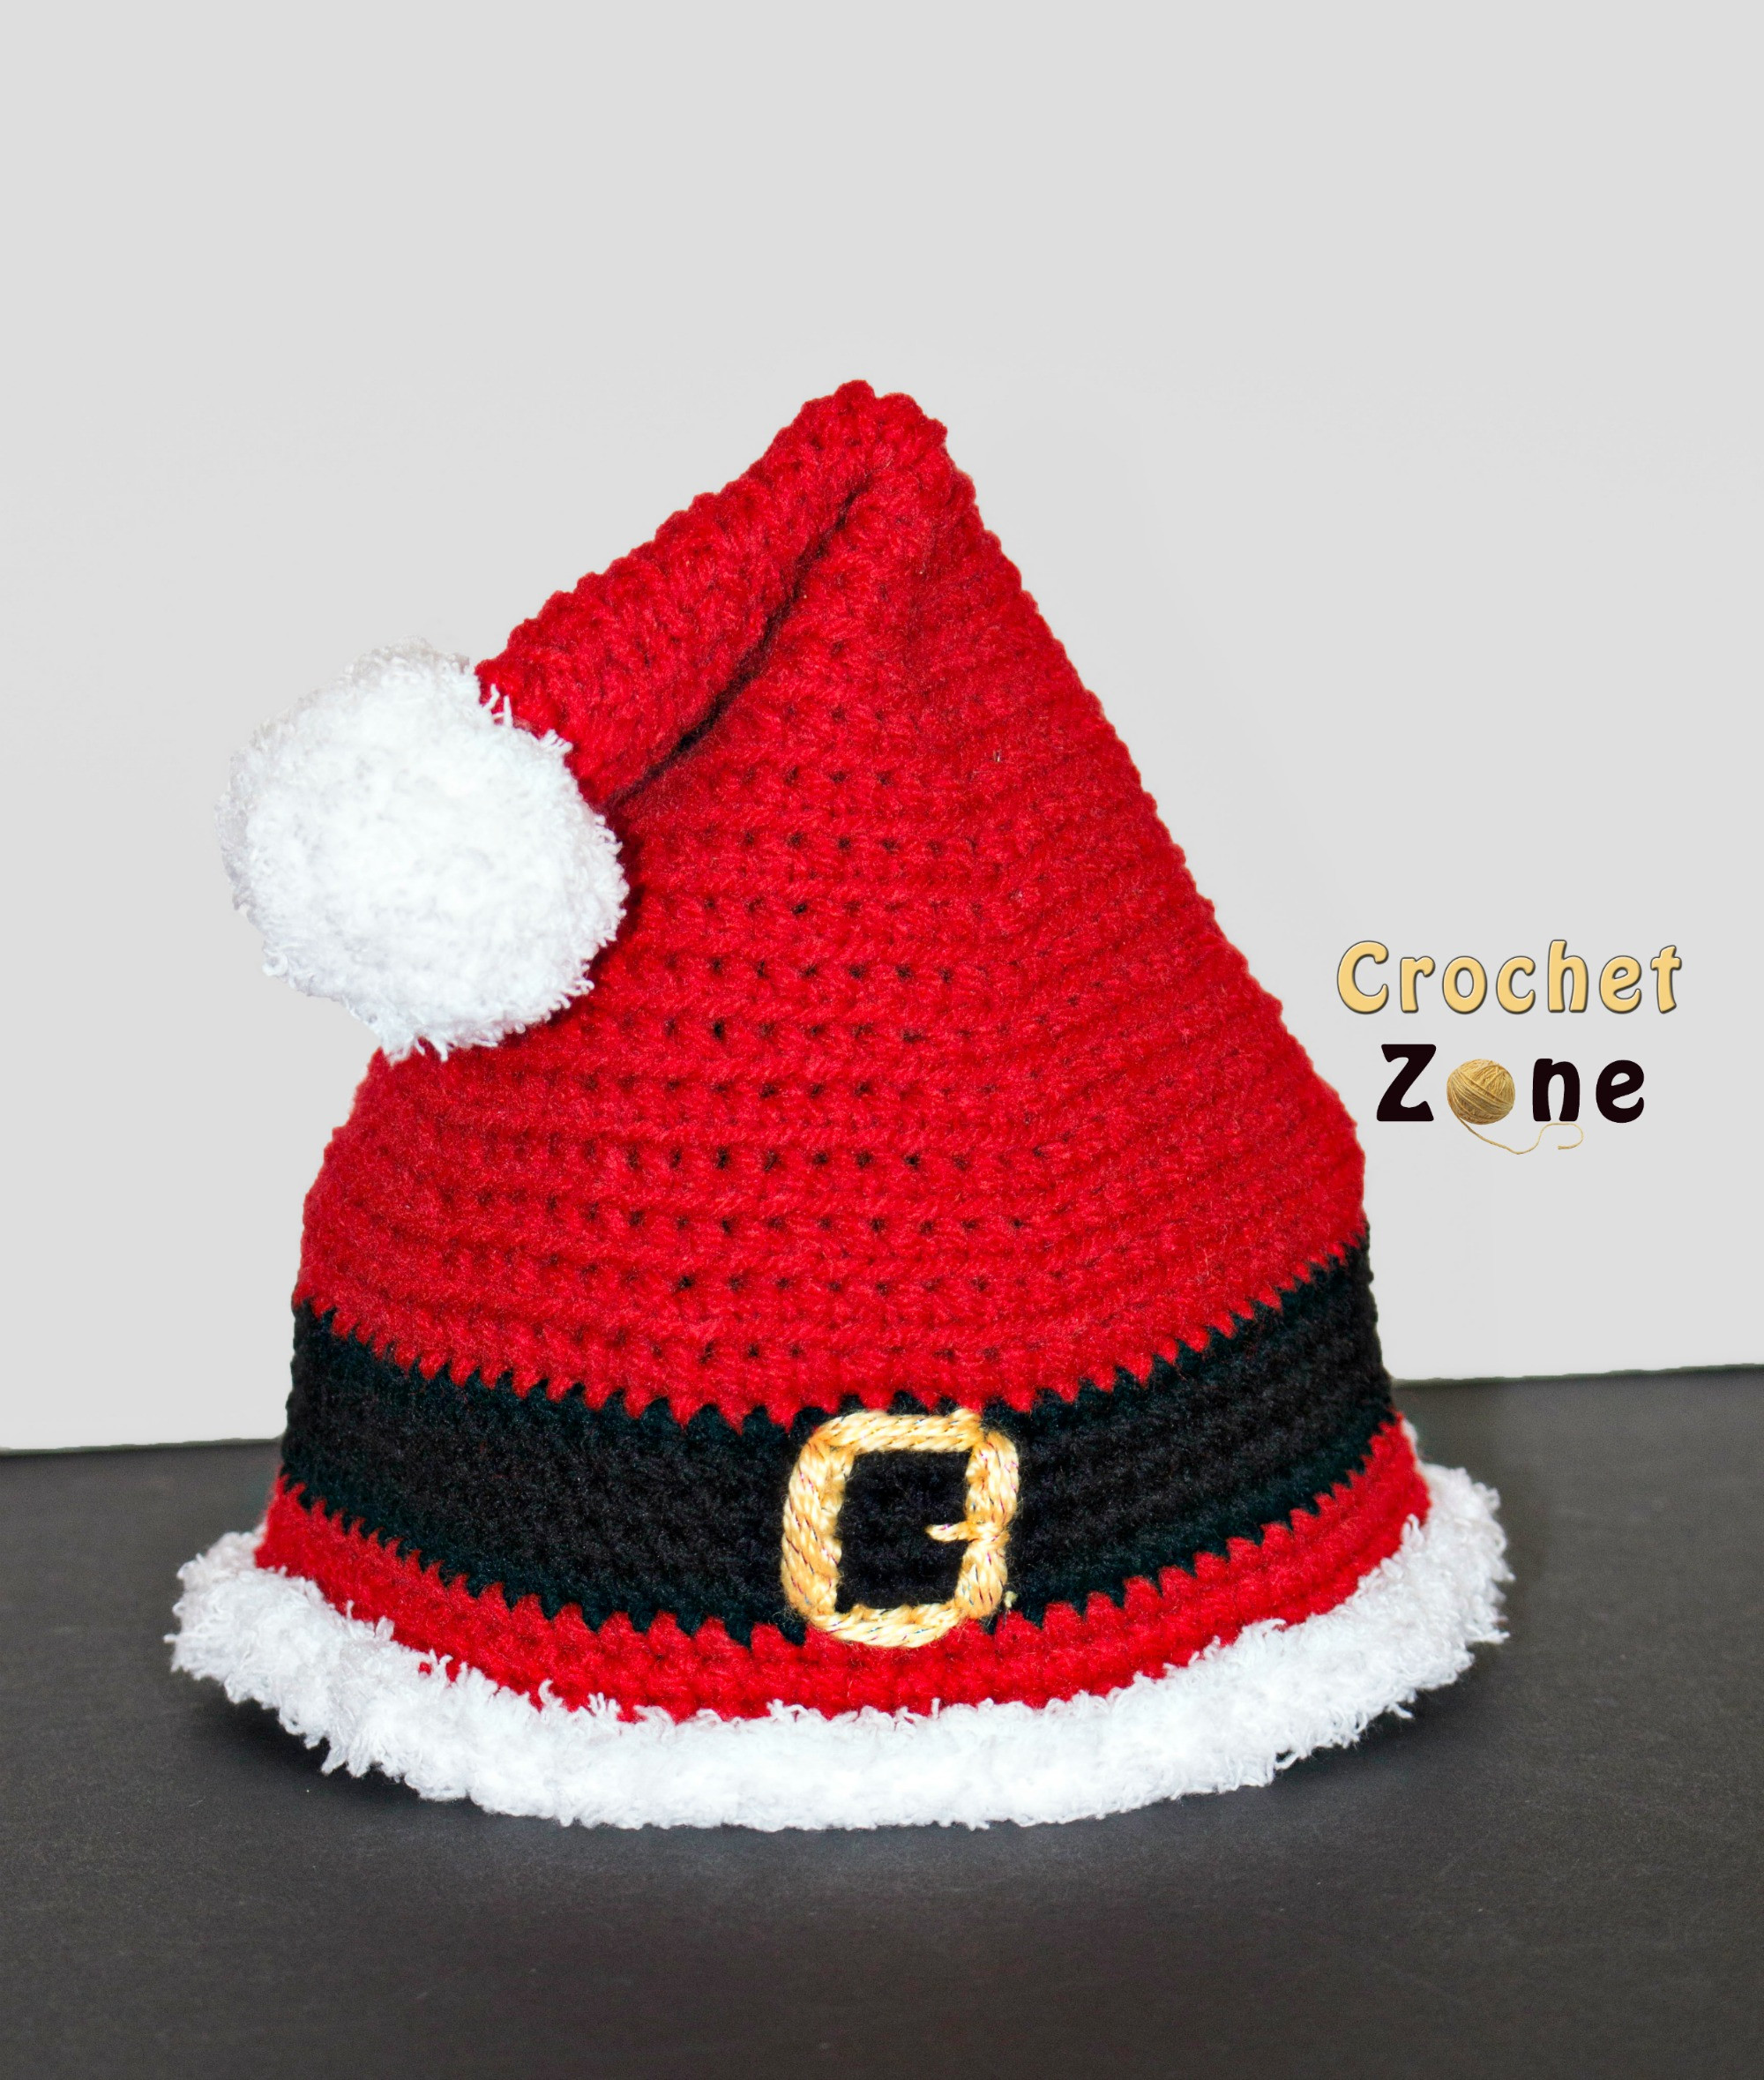 Fresh Crochet Zone All Things Crochet Santa Hat Pattern Of Best Of Crochet Santa Hat Santa Hat Pattern